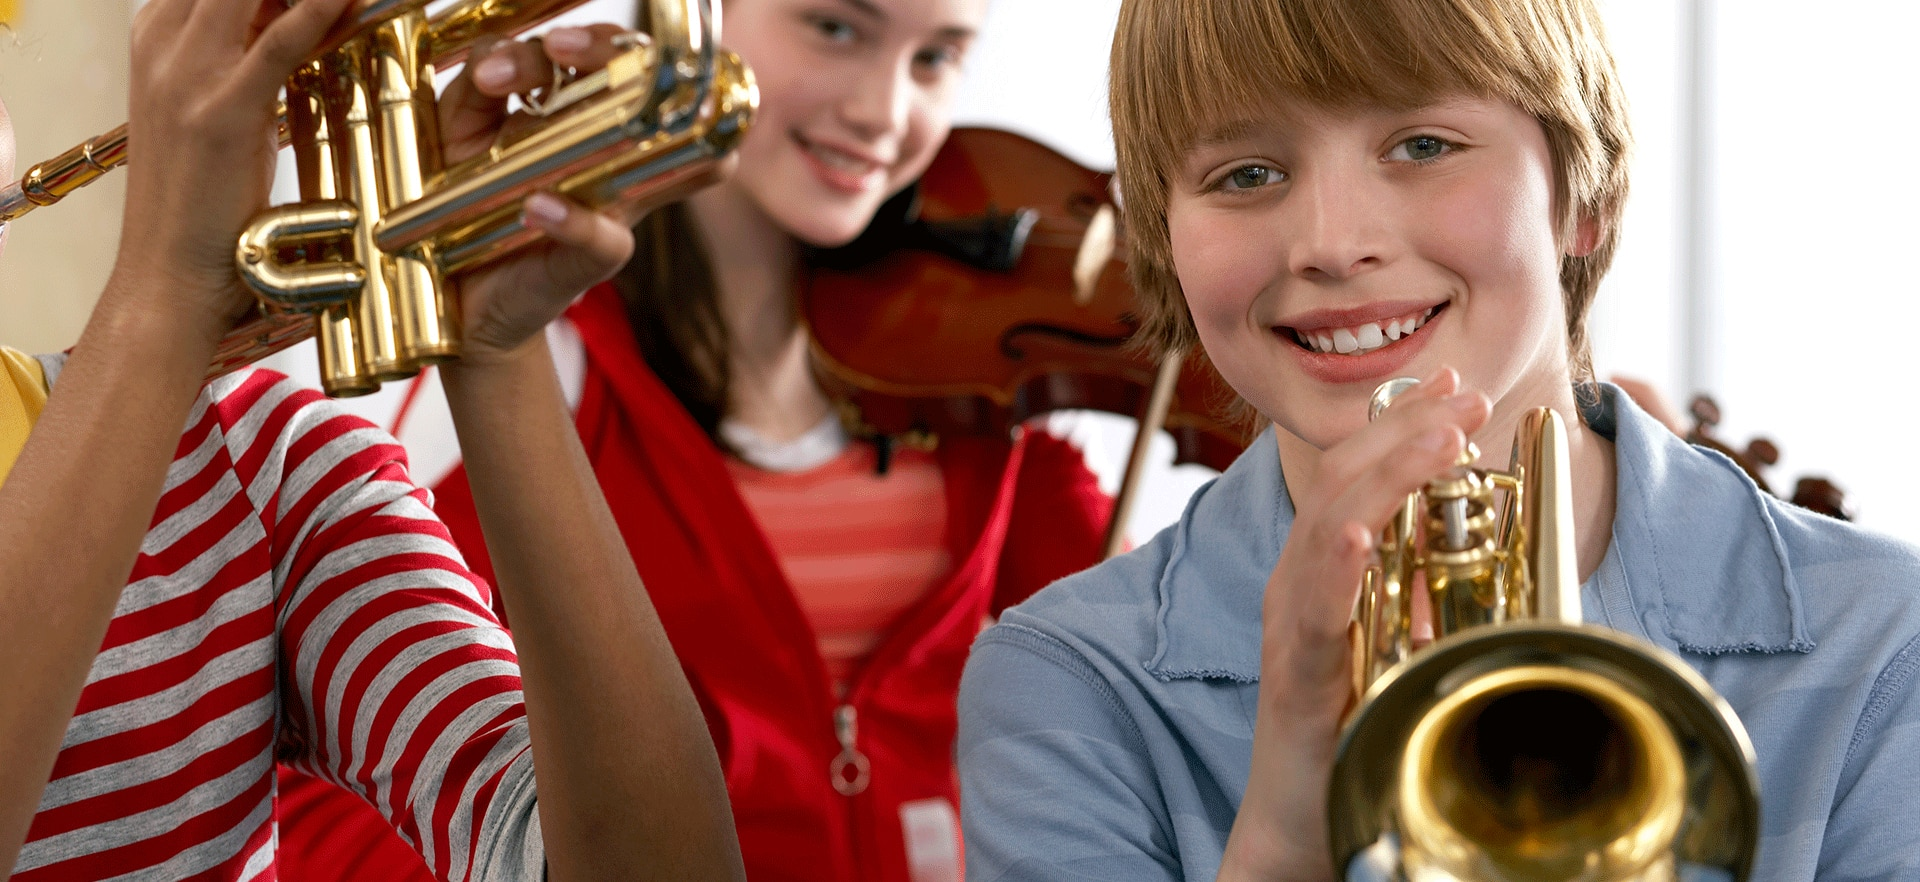 Band and orchestral instrument rental program at Alamo Music Center, including for strings and brass